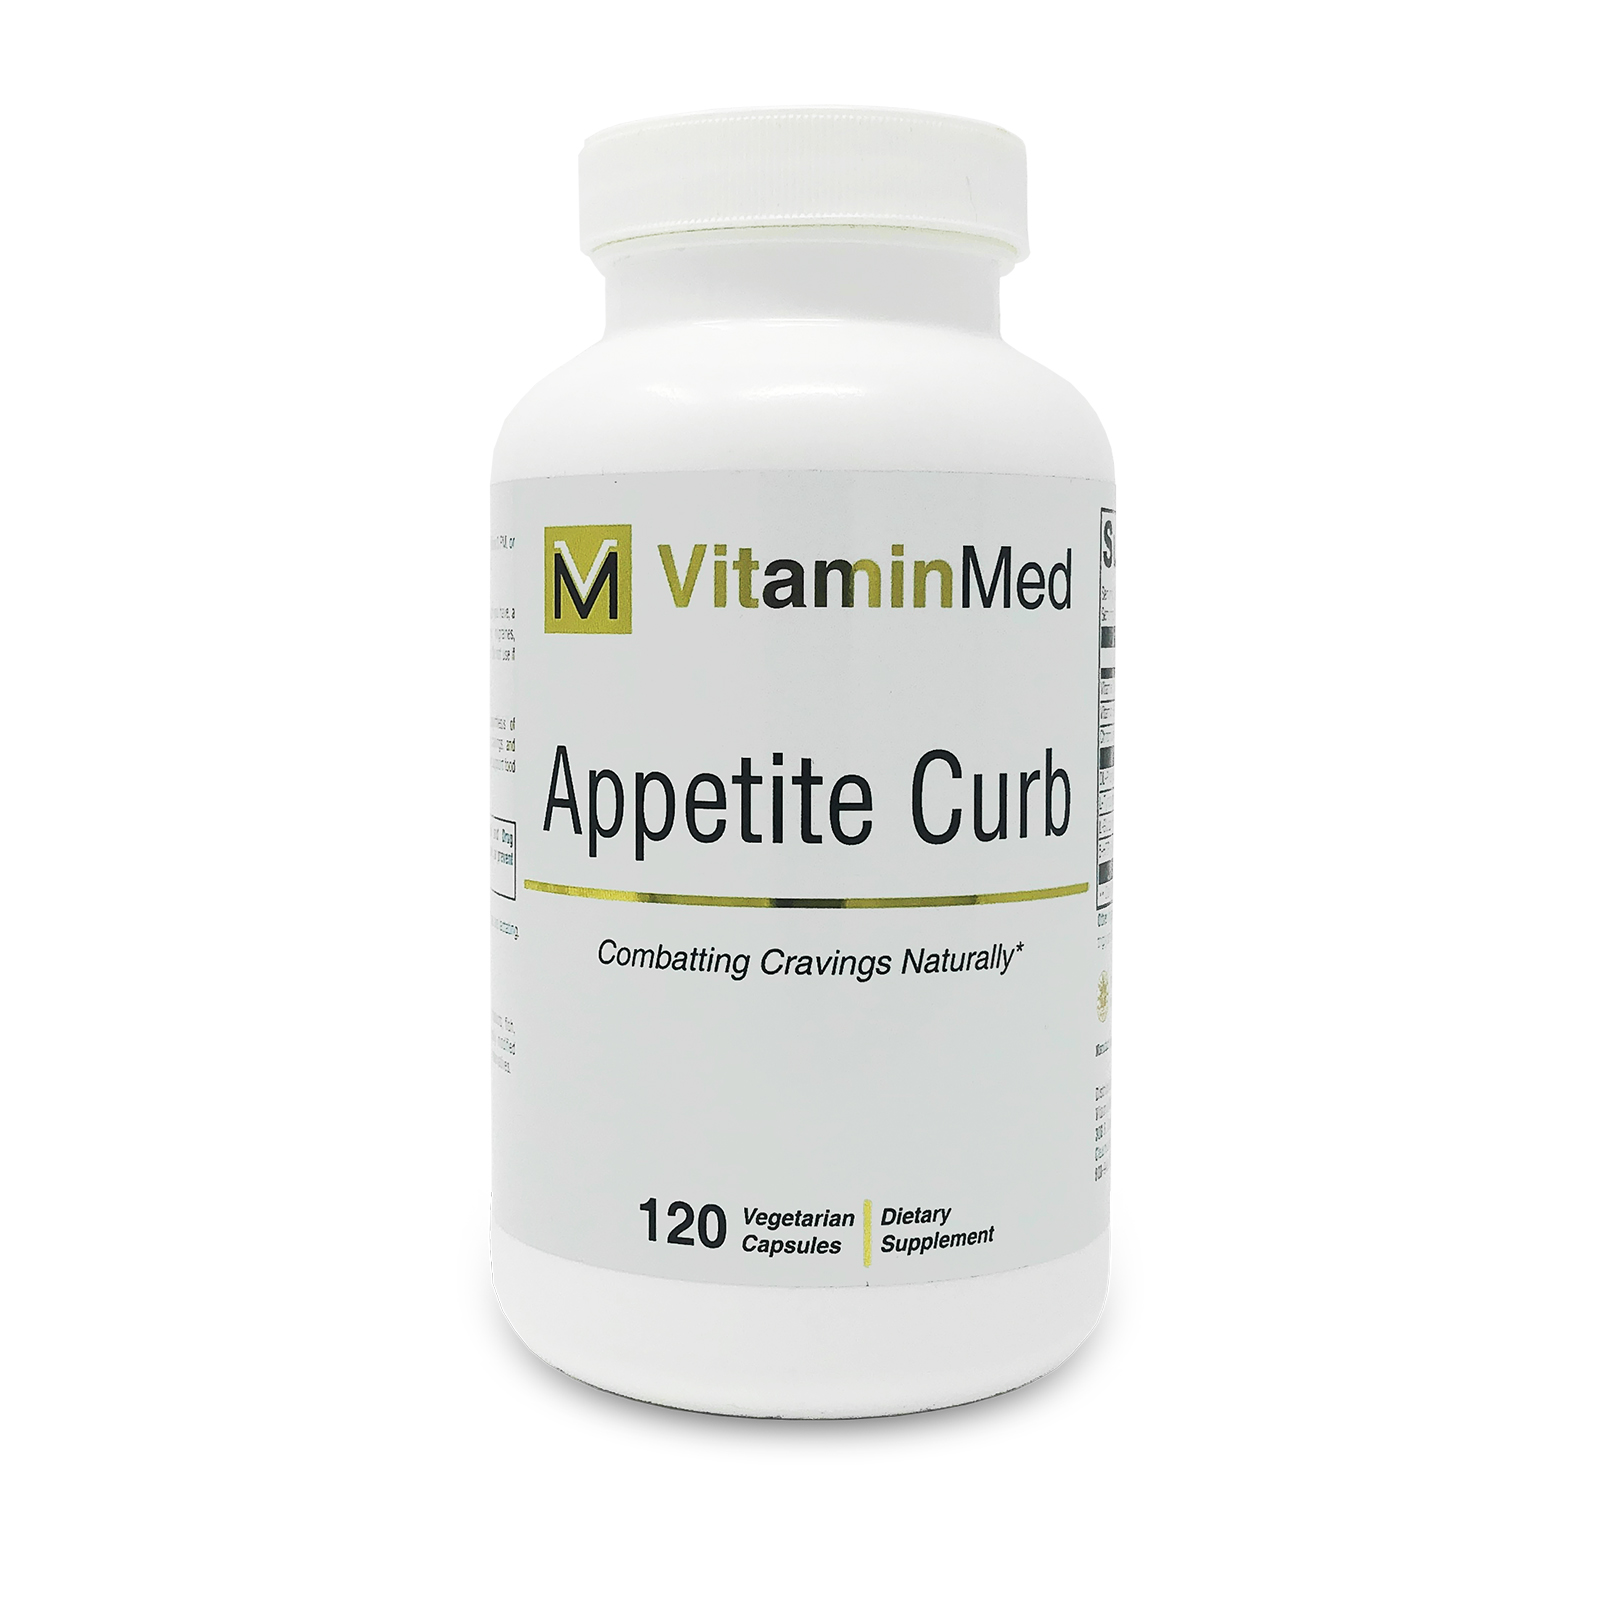 Appetite Curb